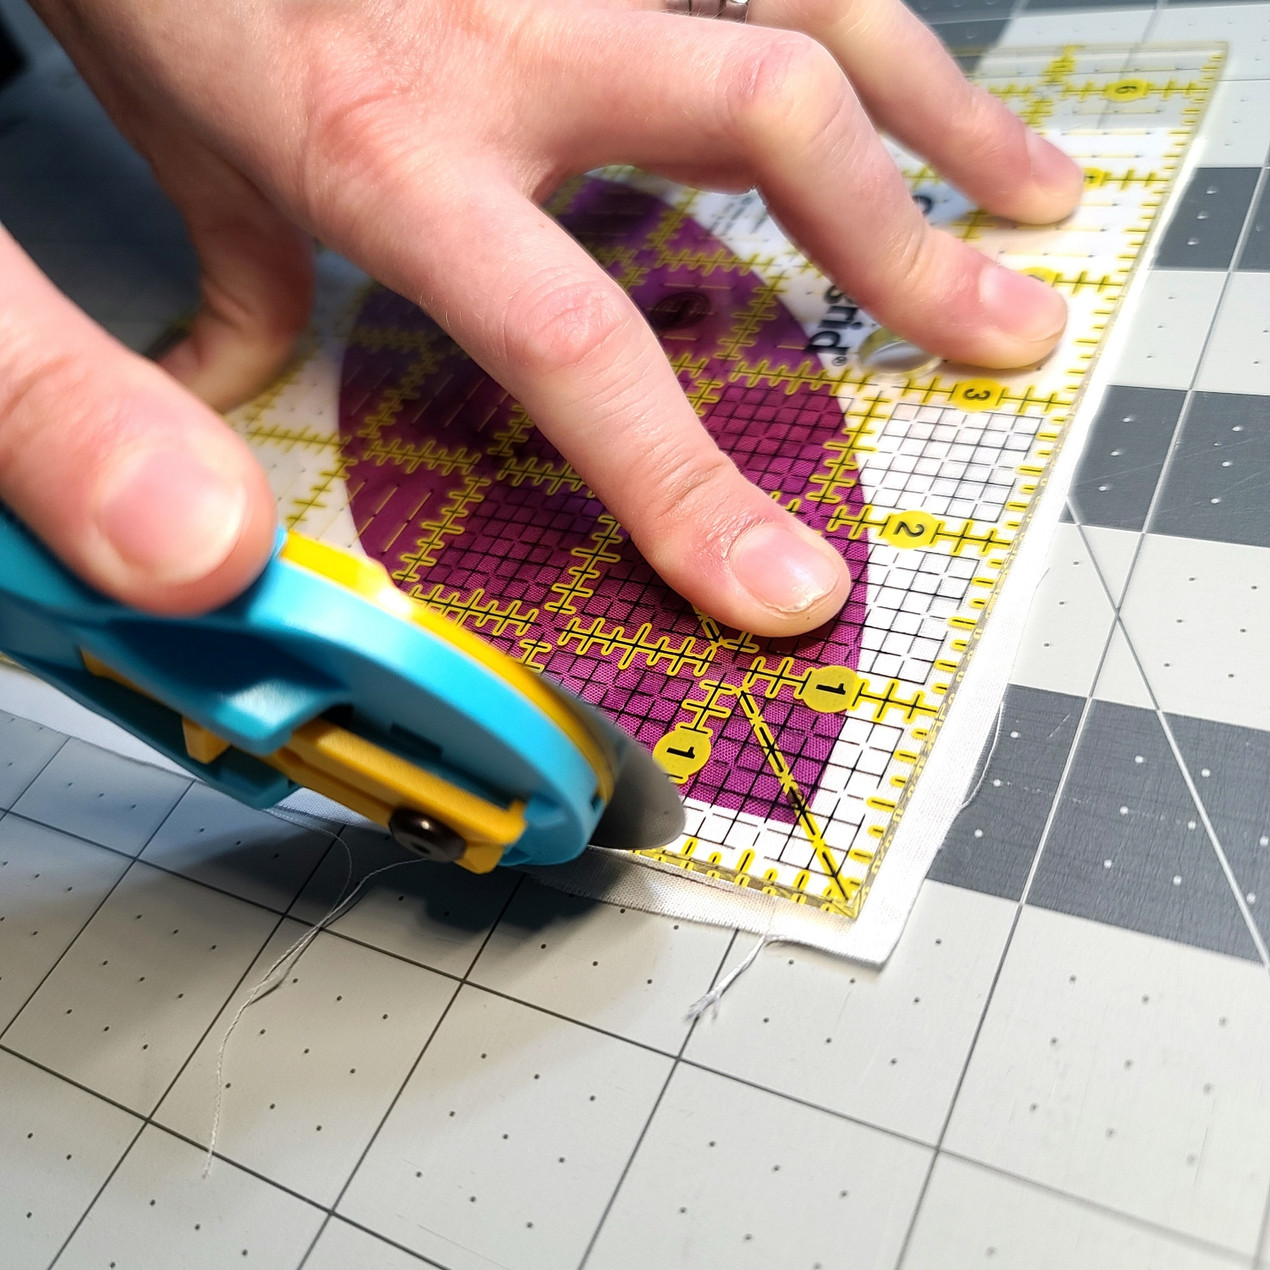 A rotary cutter trimming a quilt block